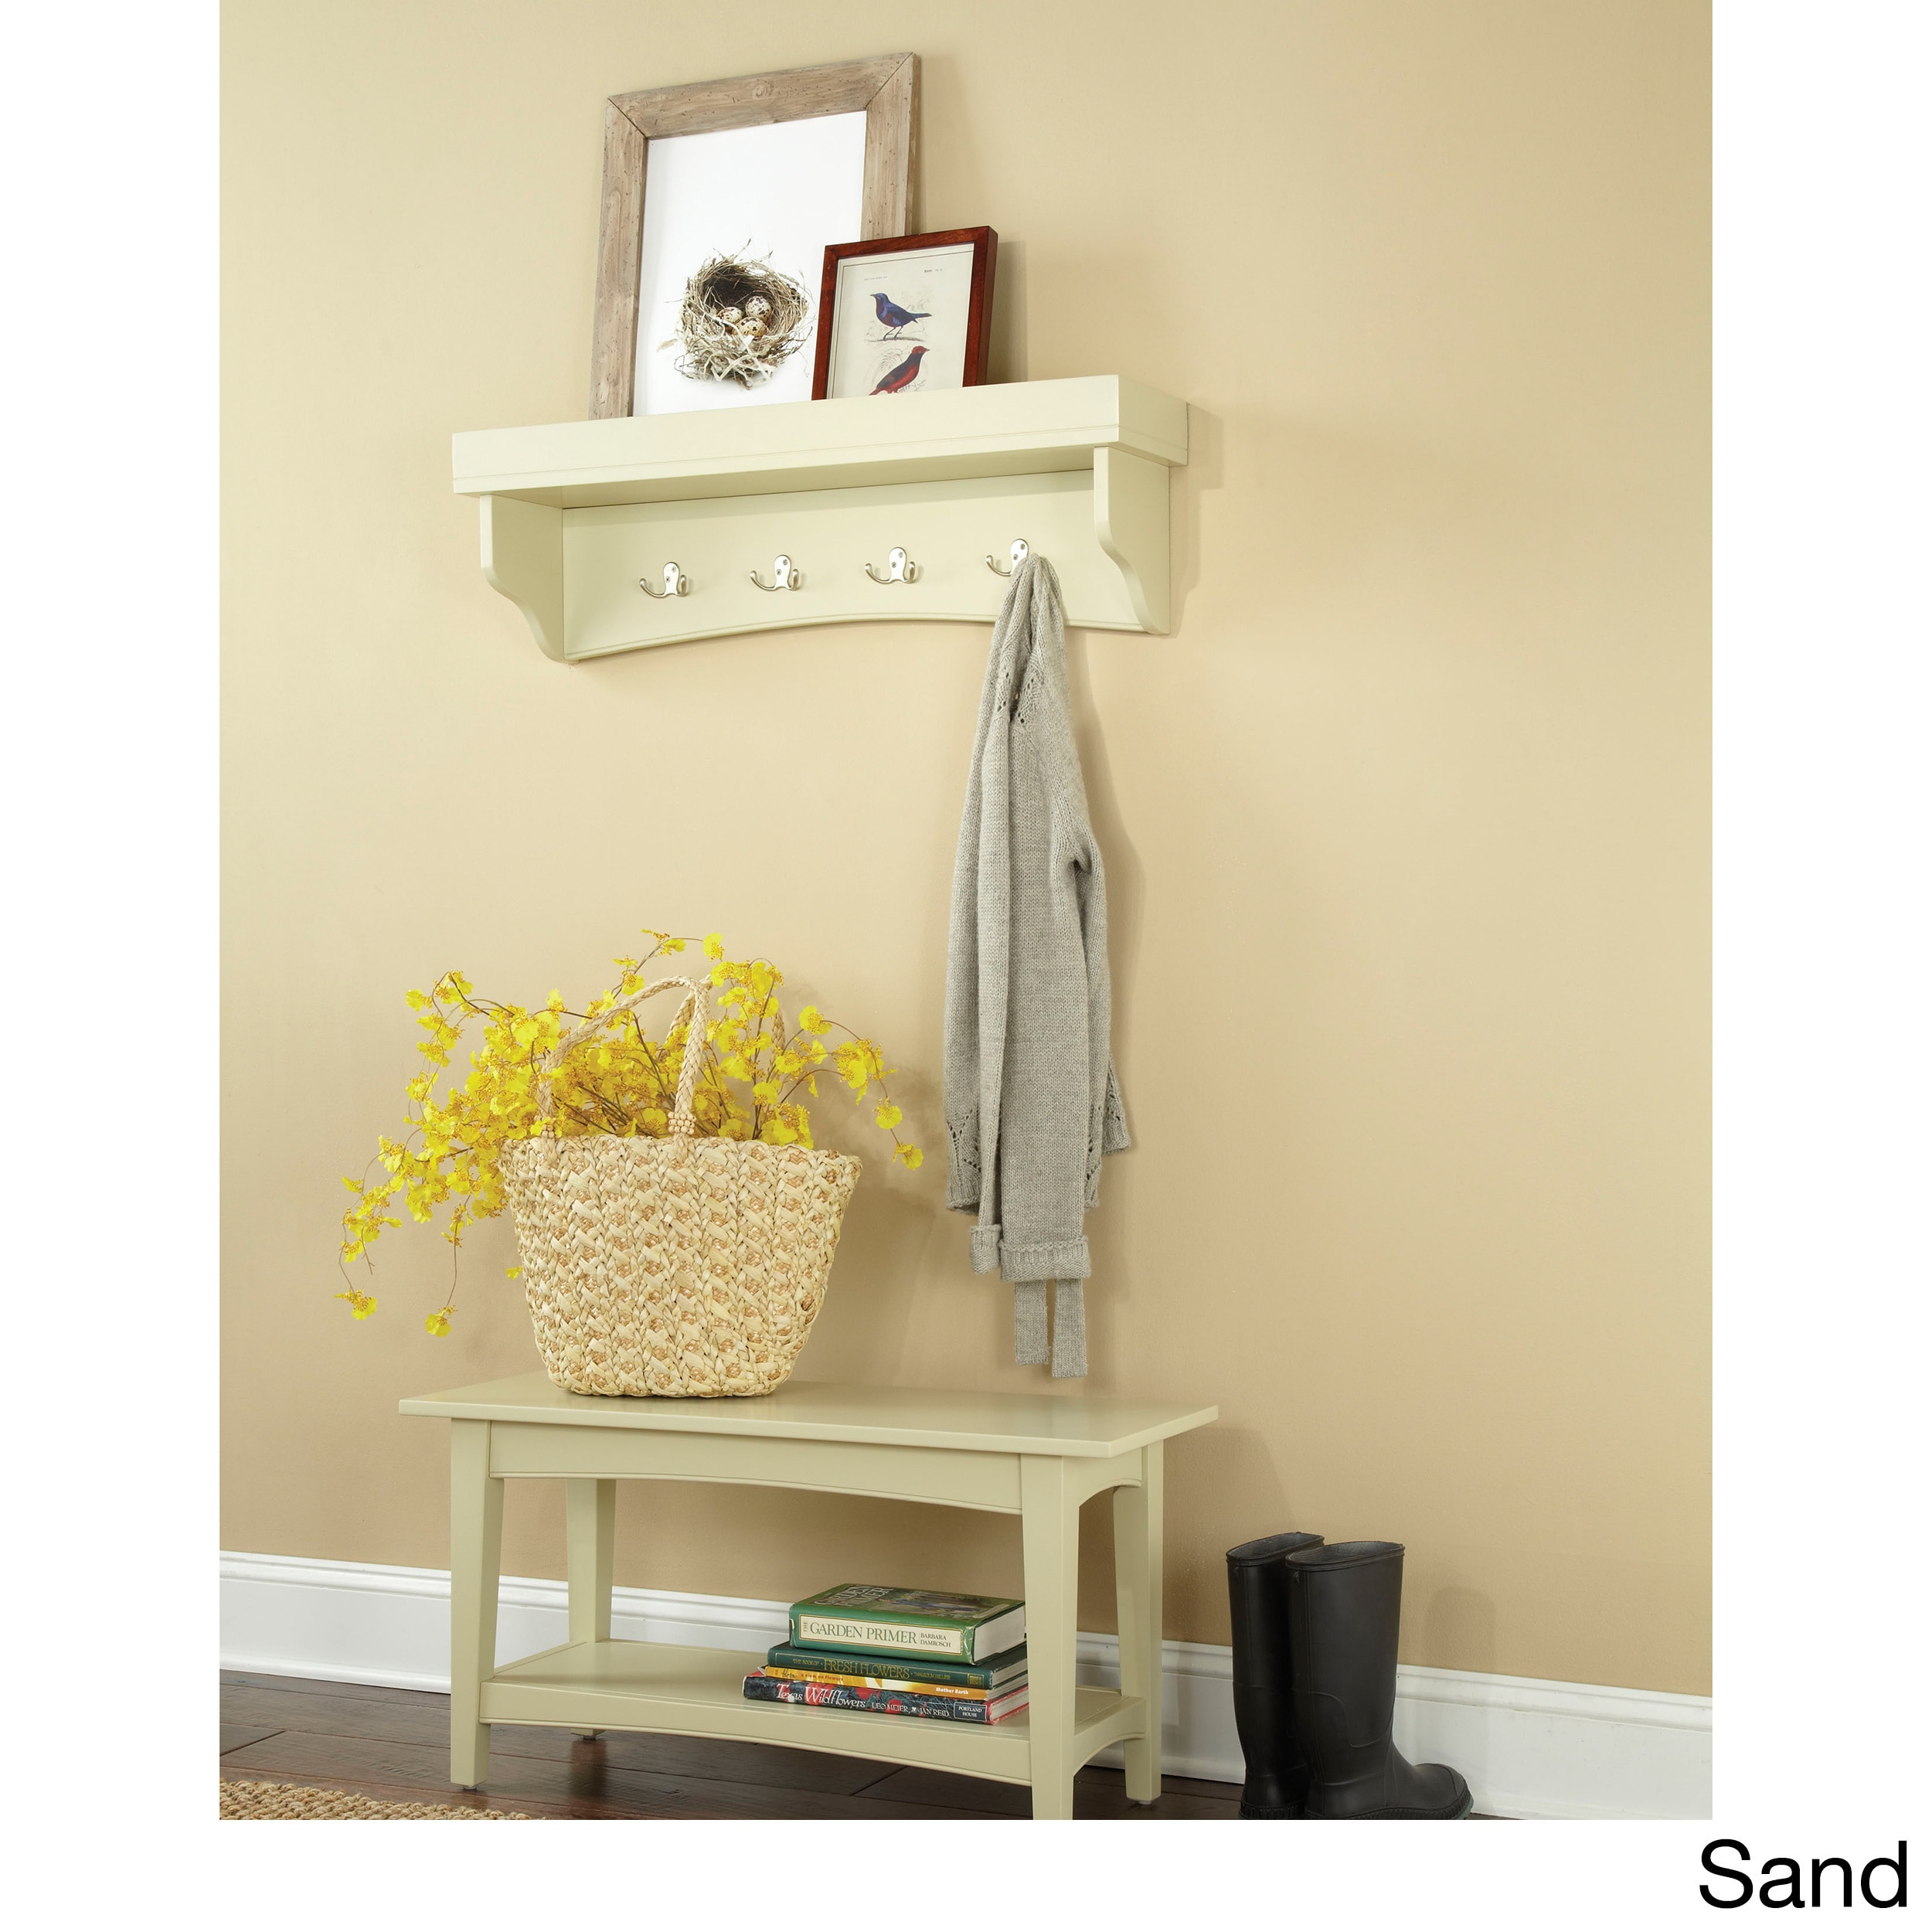 Buy Cream Bookshelves & Bookcases Online at Overstock.com | Our Best ...